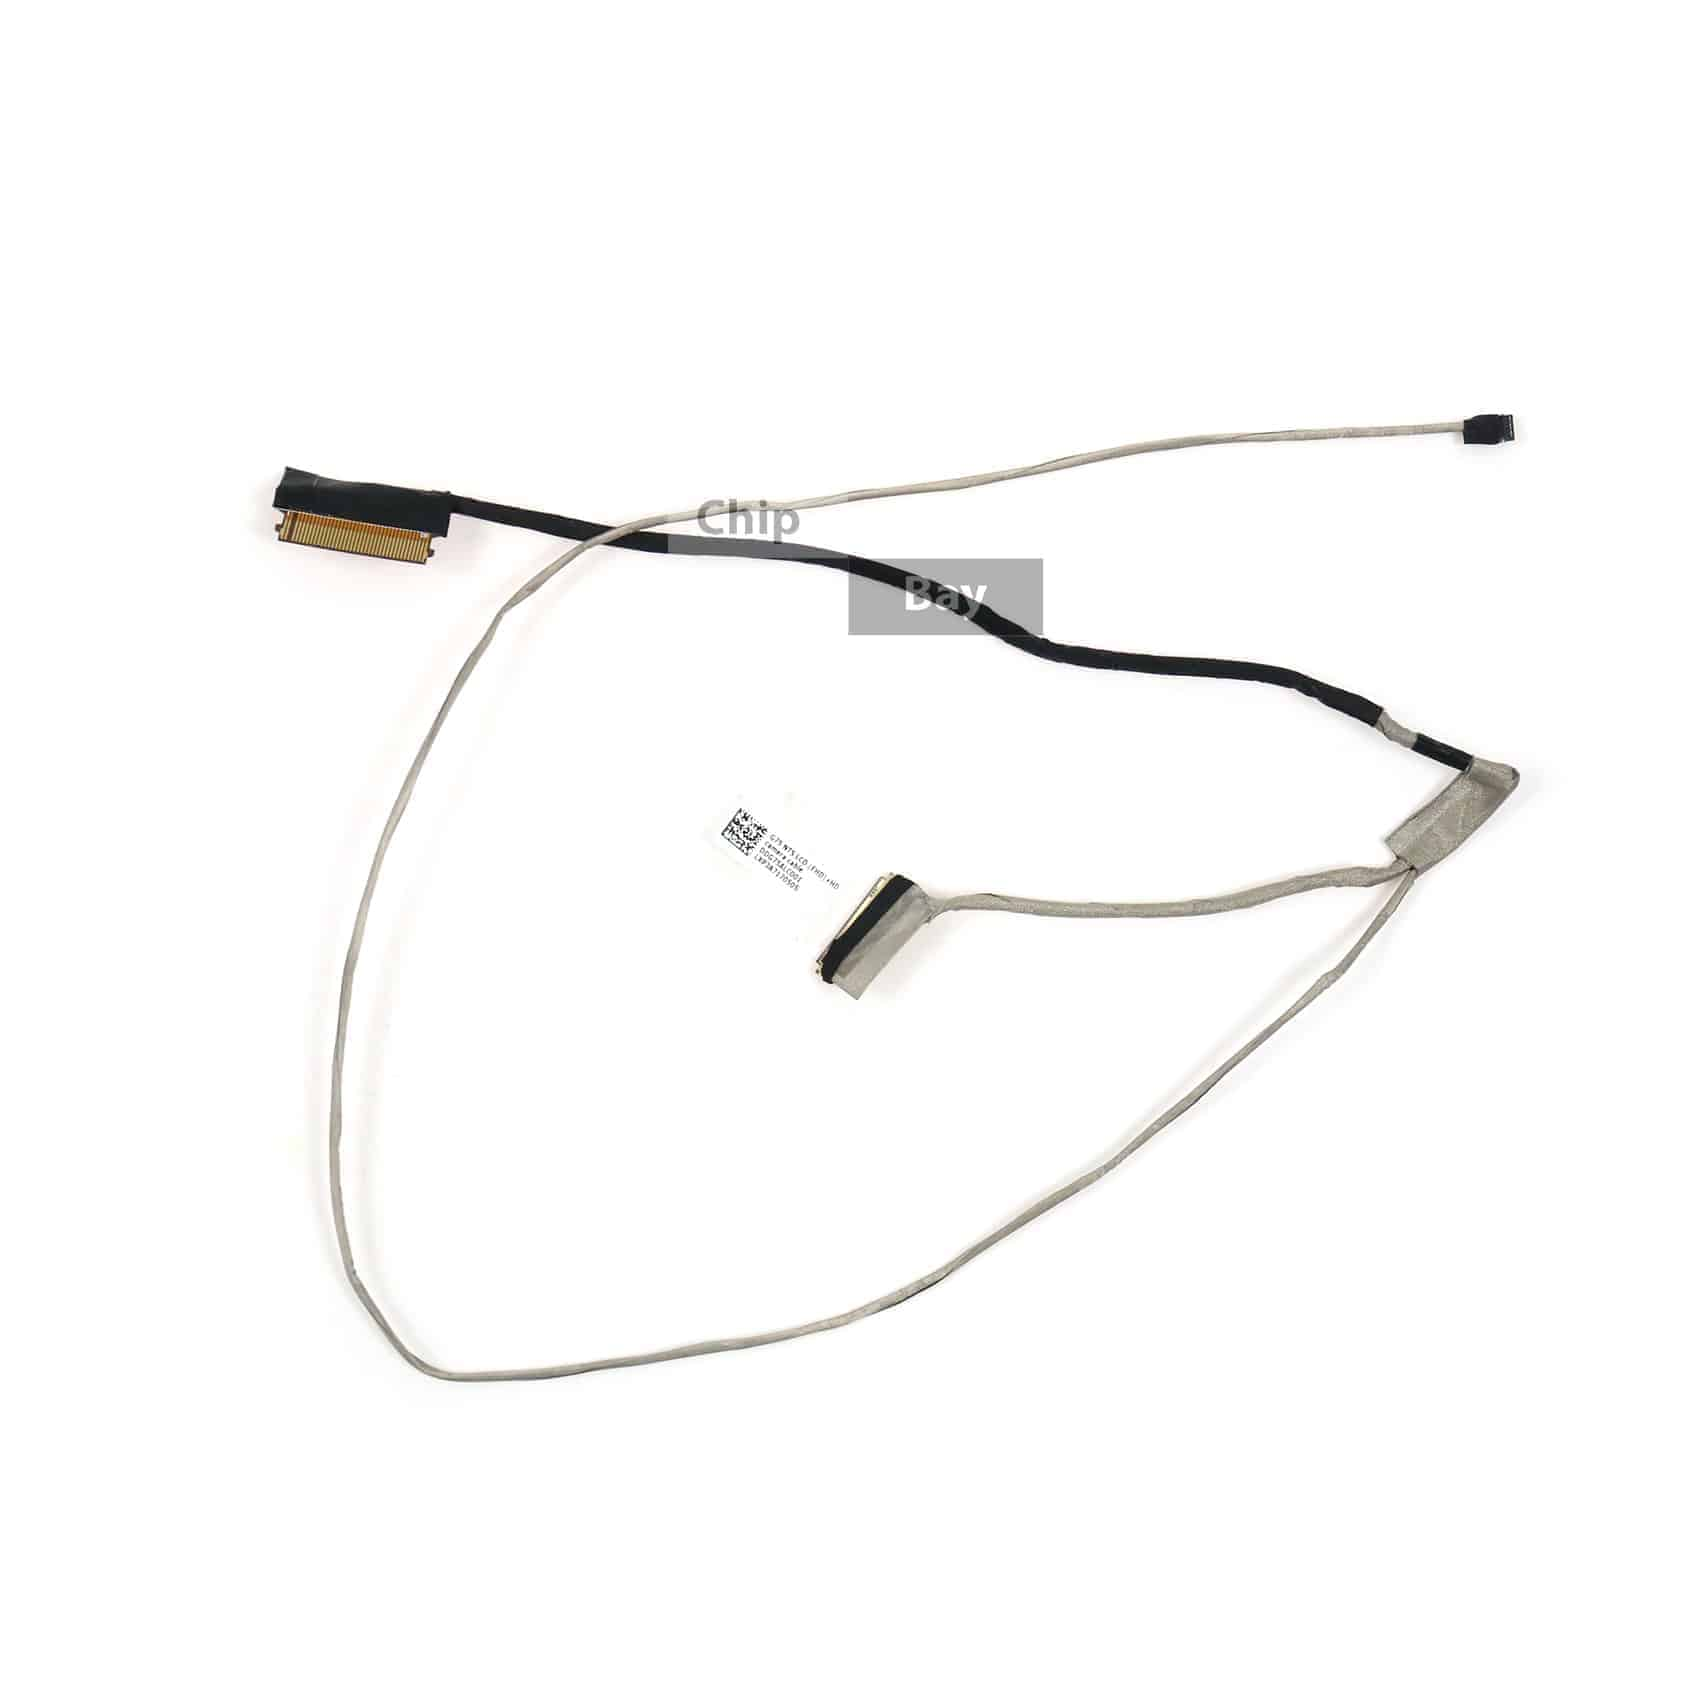 Genuine Hp 15 Cb Series Laptop Screen Video Ribbon Cable